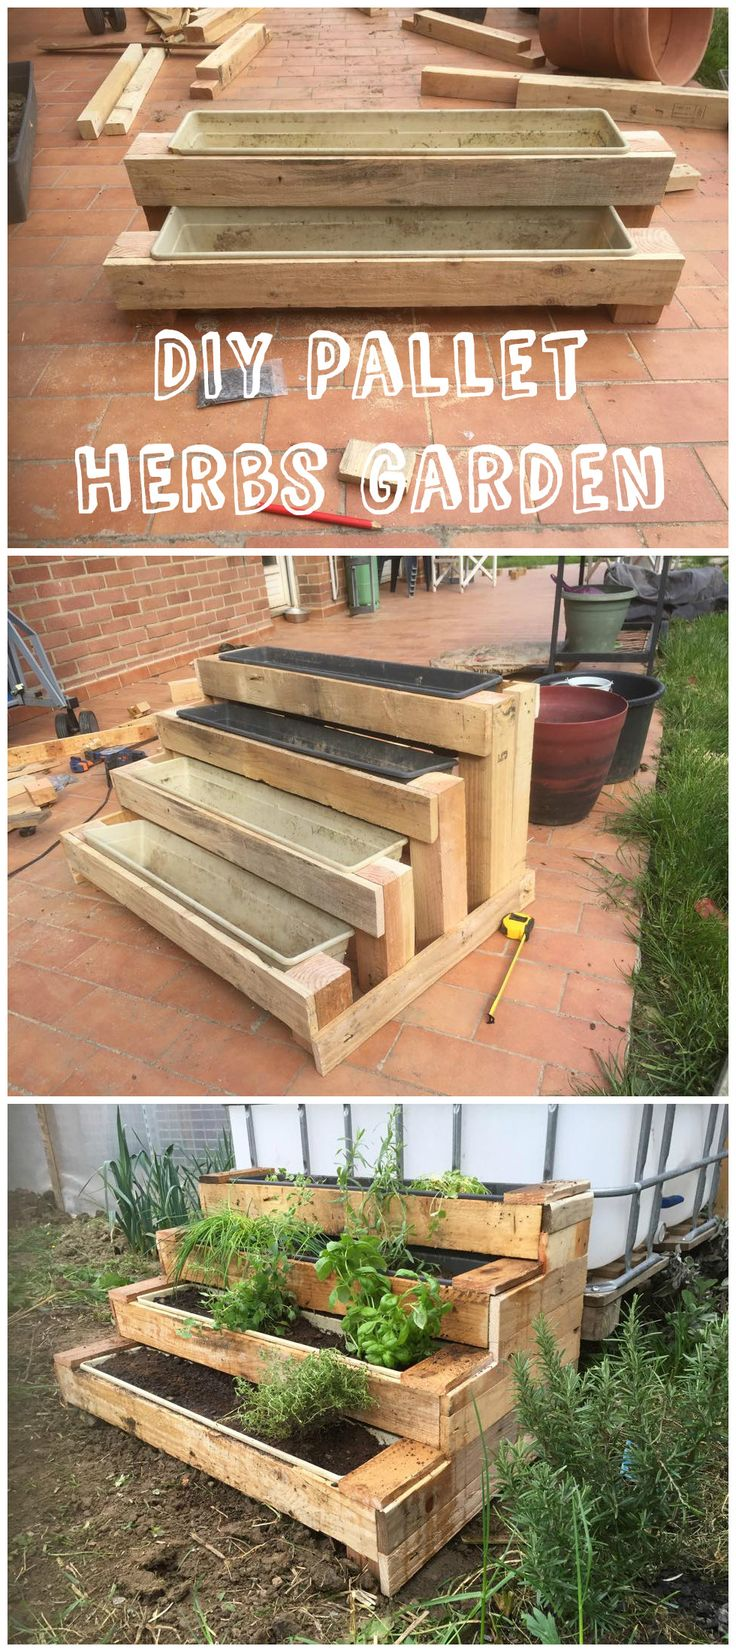 Here is an original version of asmall herbs garden. The stairs shape is perfect to save space and avoid backaches!